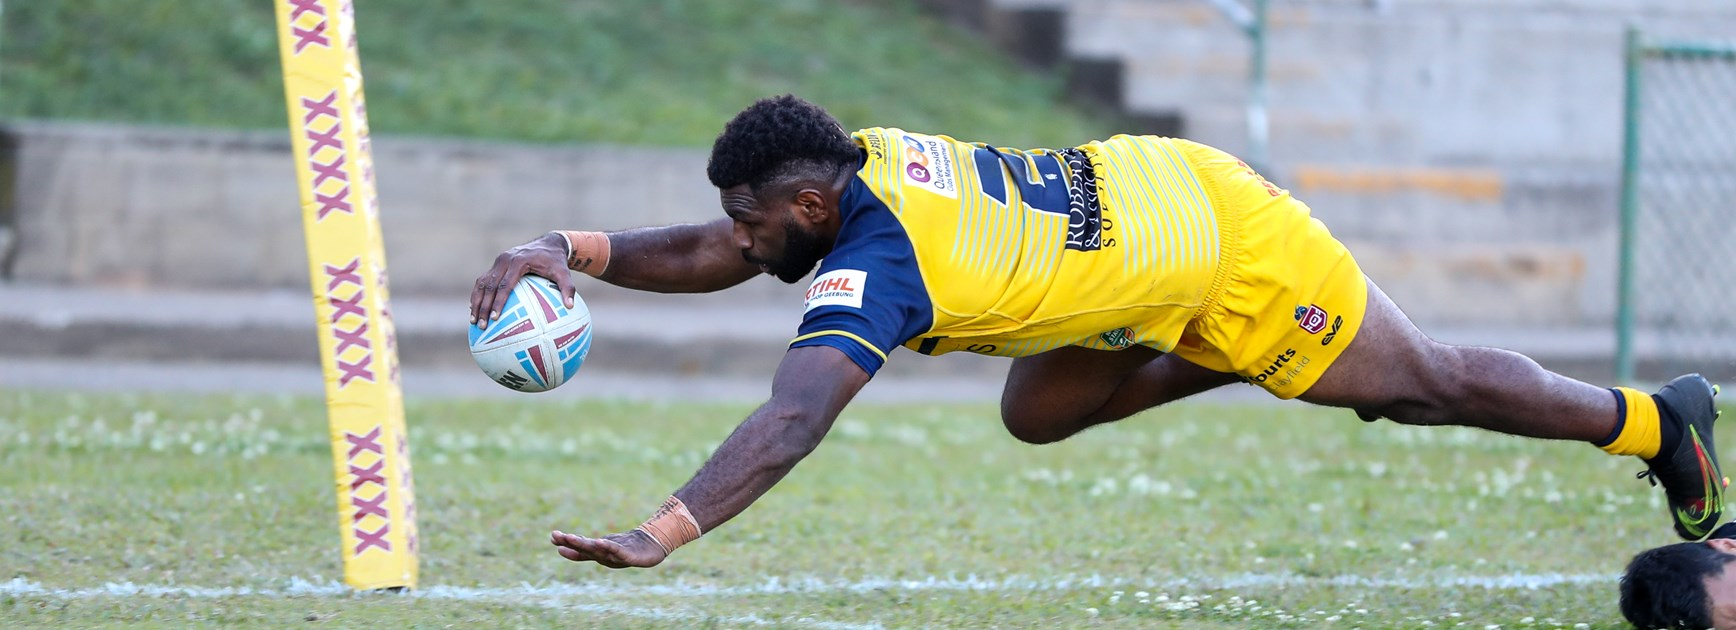 Norths firm as Cup contenders with big win over Tweed